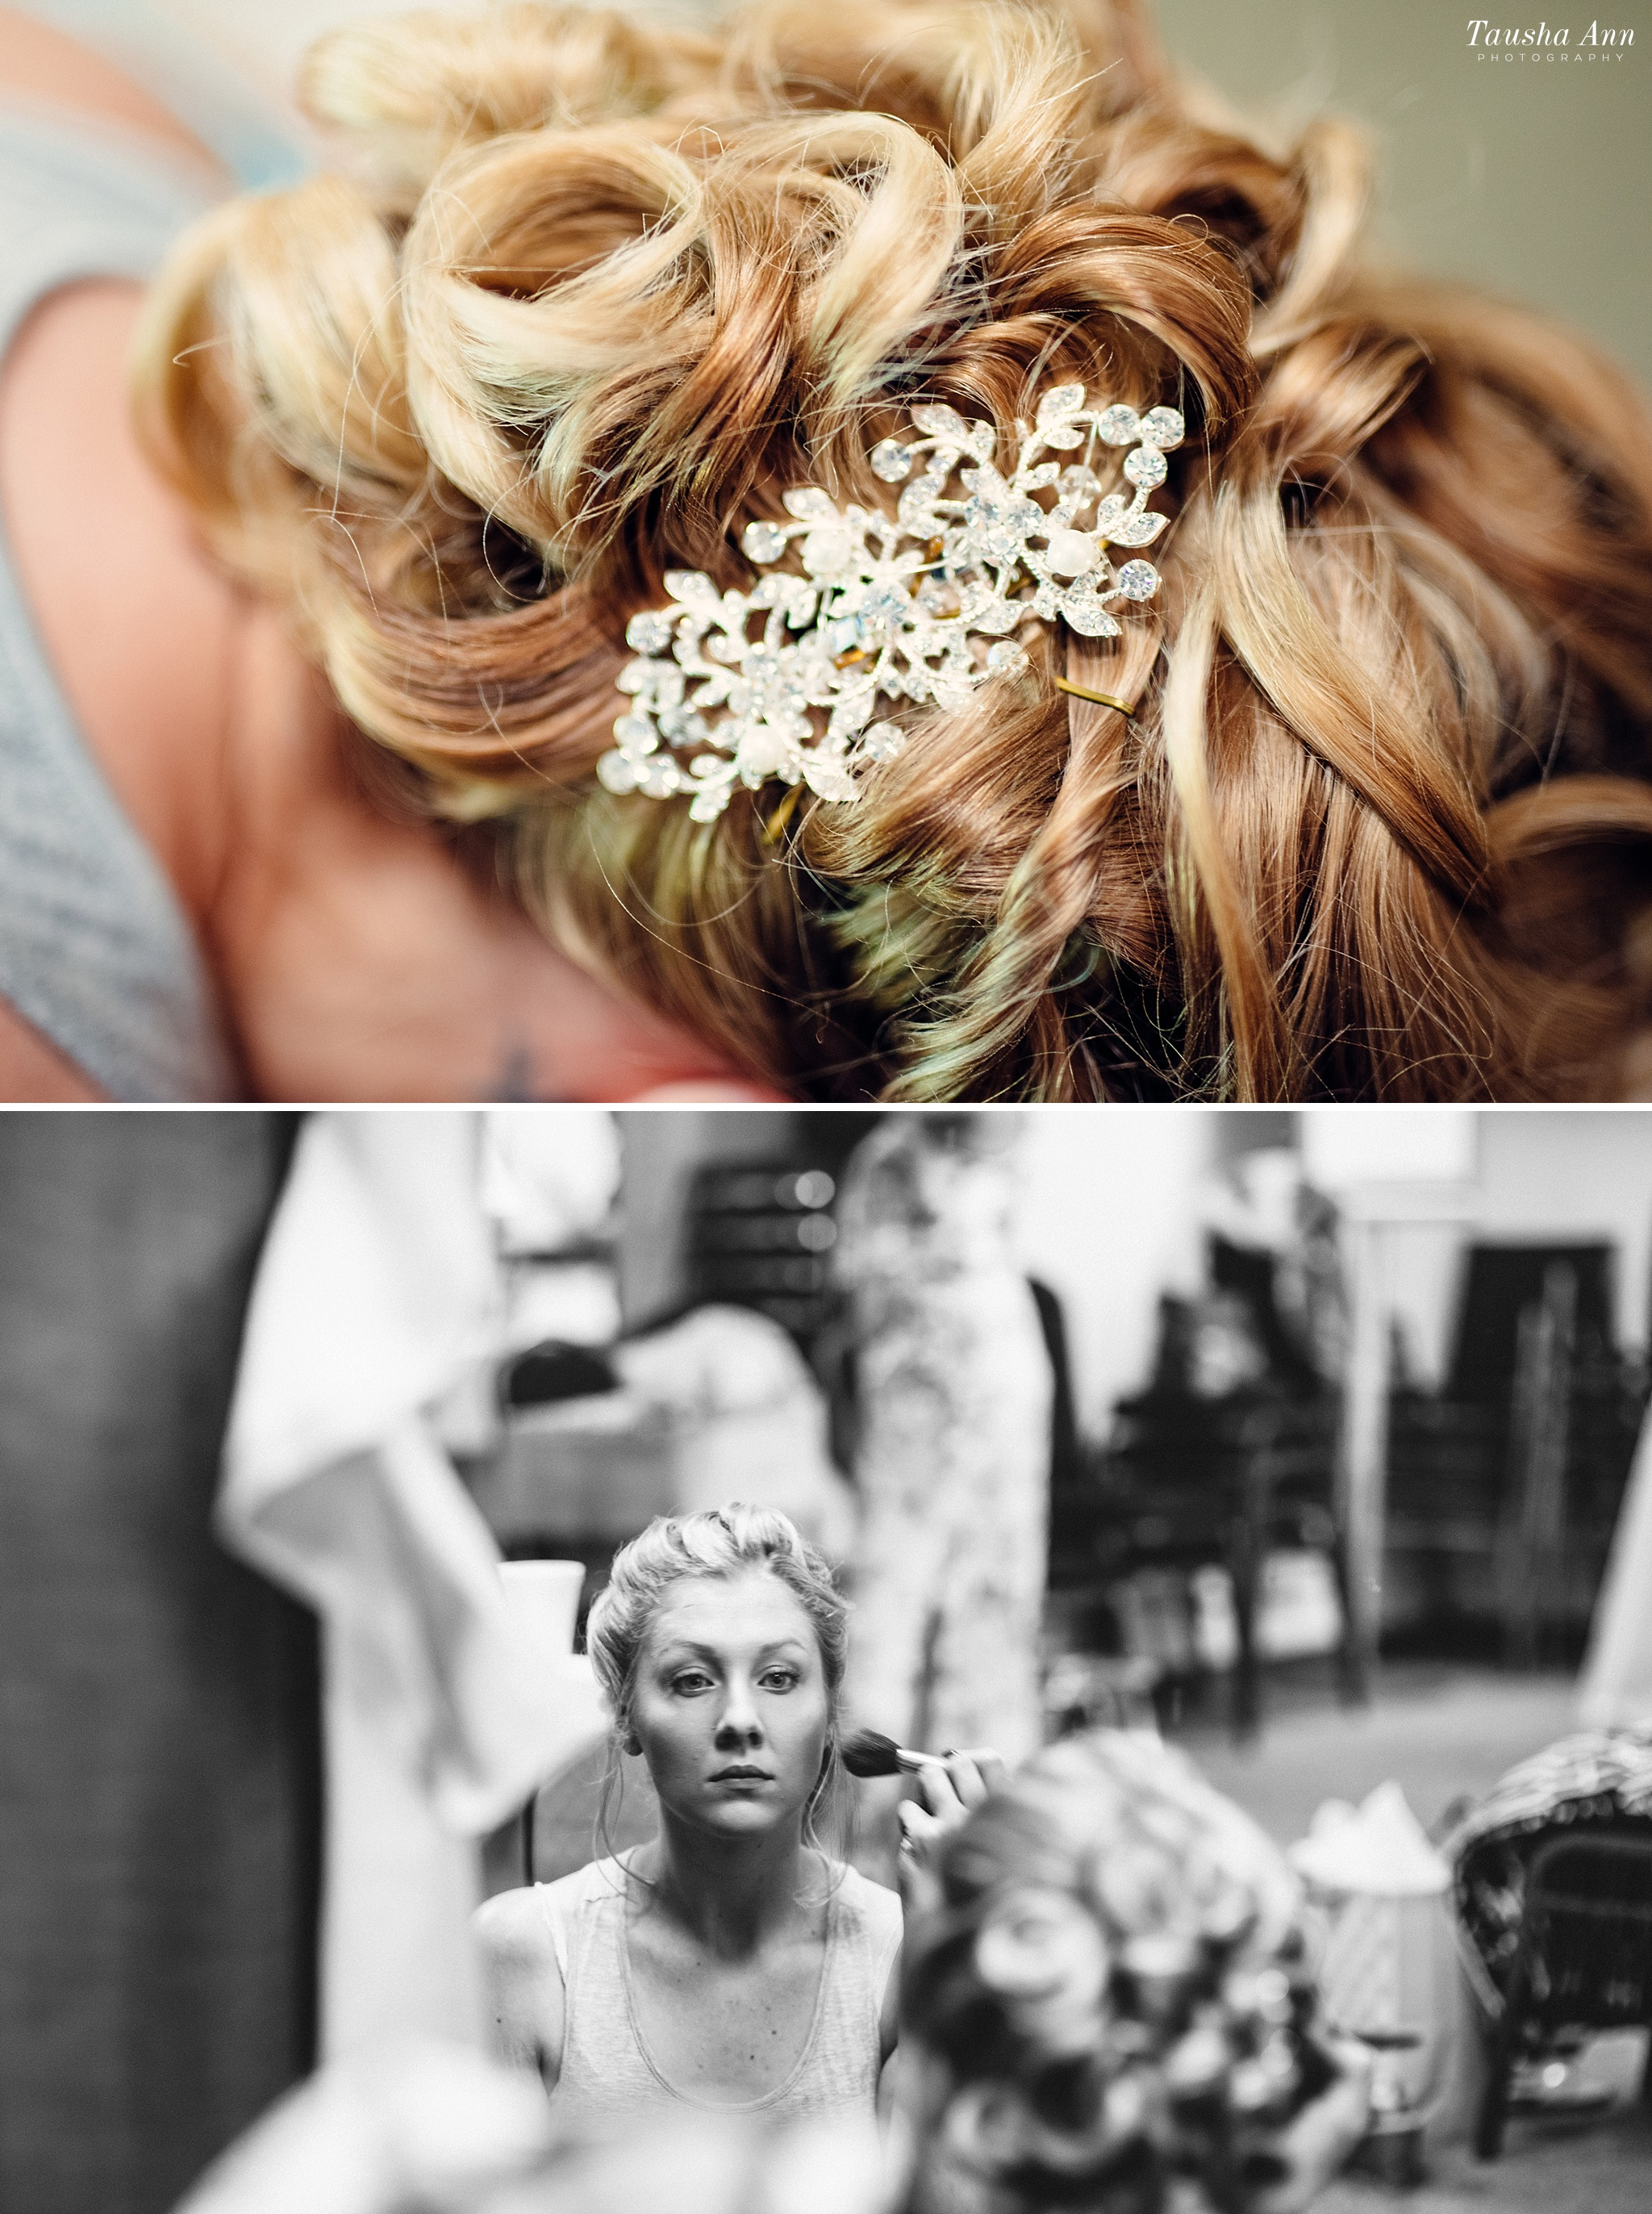 Bride looking at herself seriously in the mirror. Photo of flower detail in brides hair.